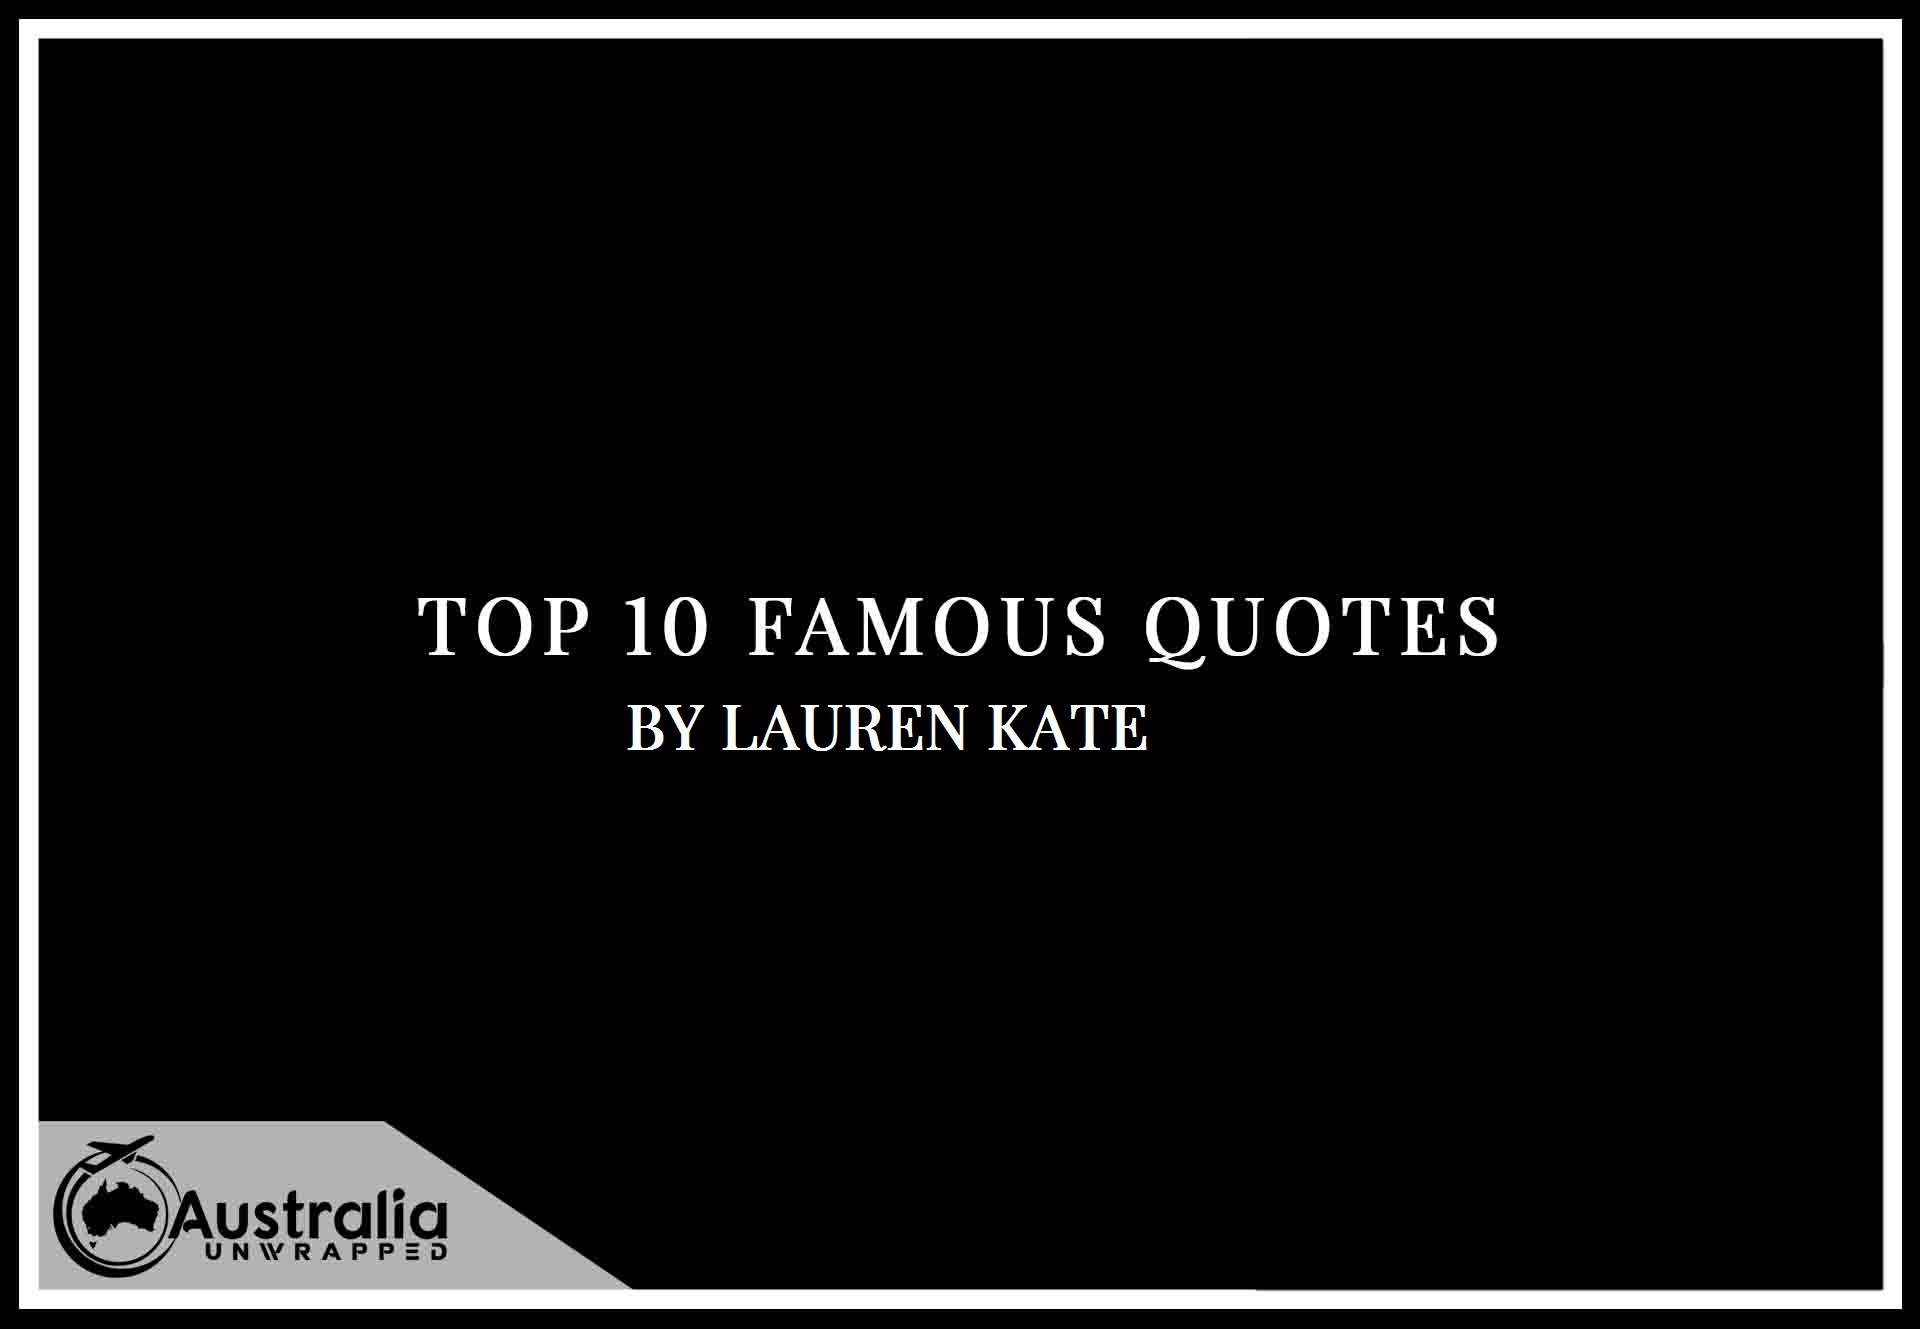 Lauren Kate's Top 10 Popular and Famous Quotes